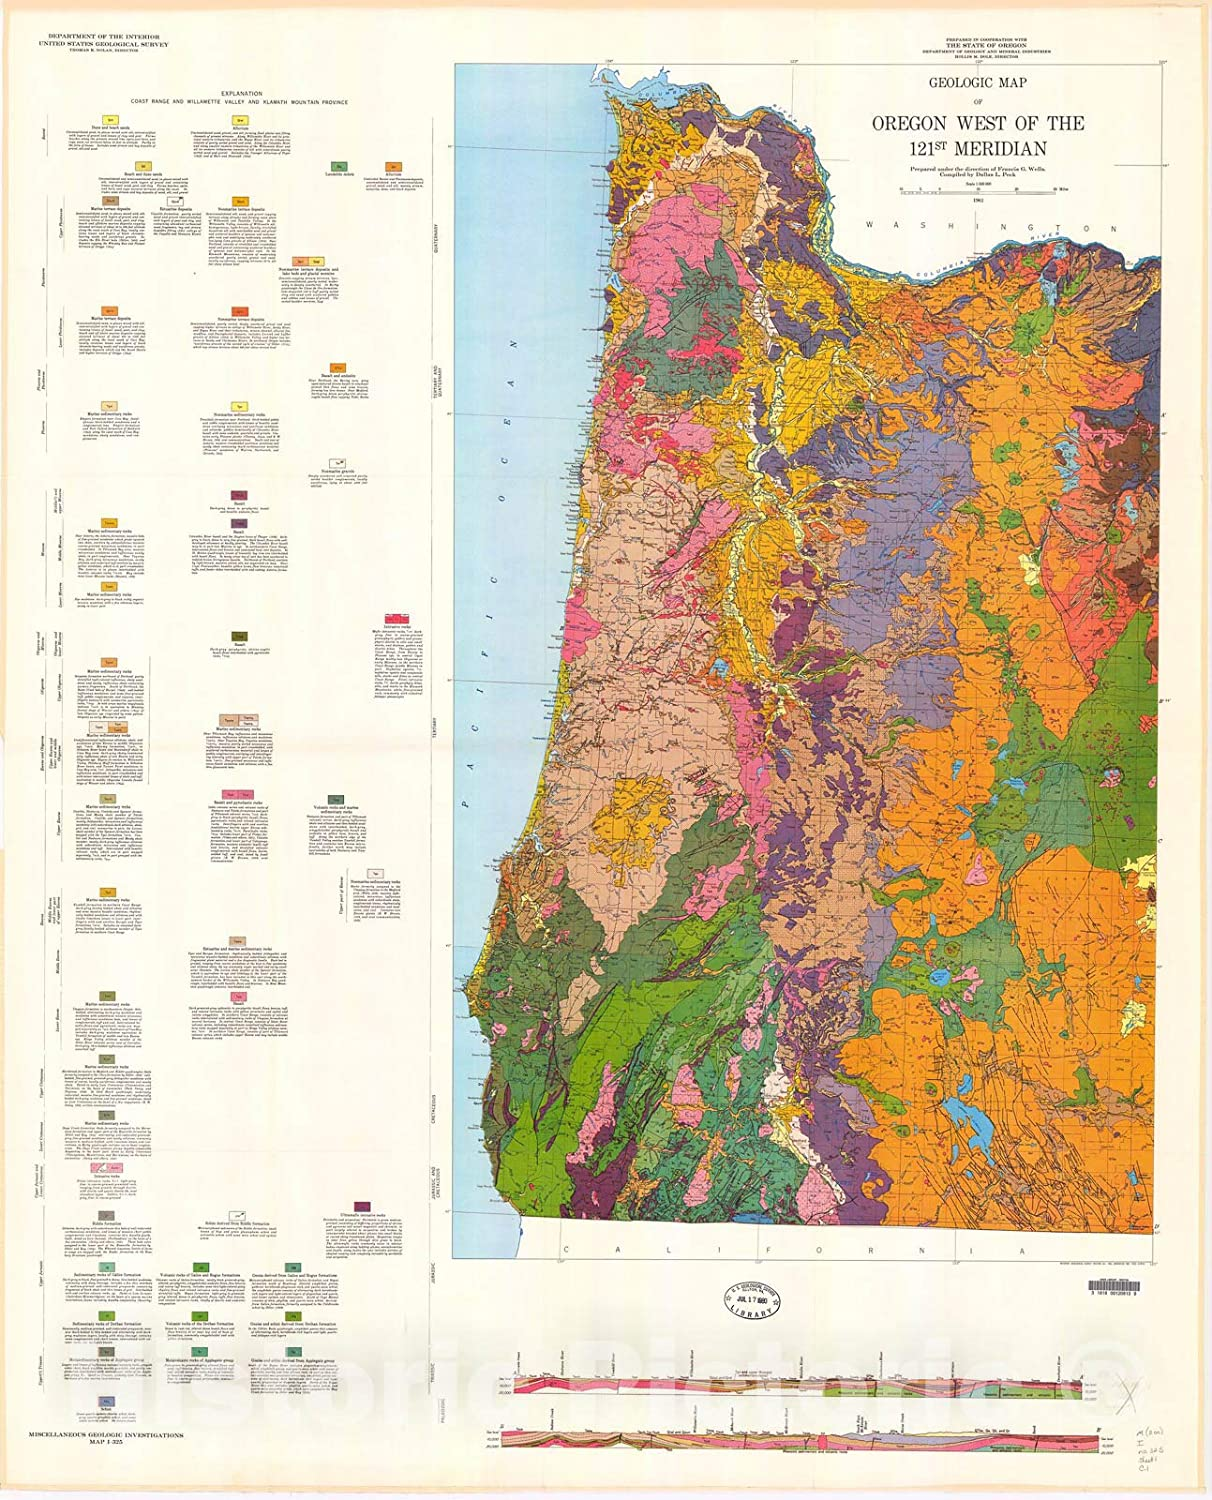 Historic Pictoric Map : Geologic map west The All items in the Max 67% OFF store 121st Oregon of